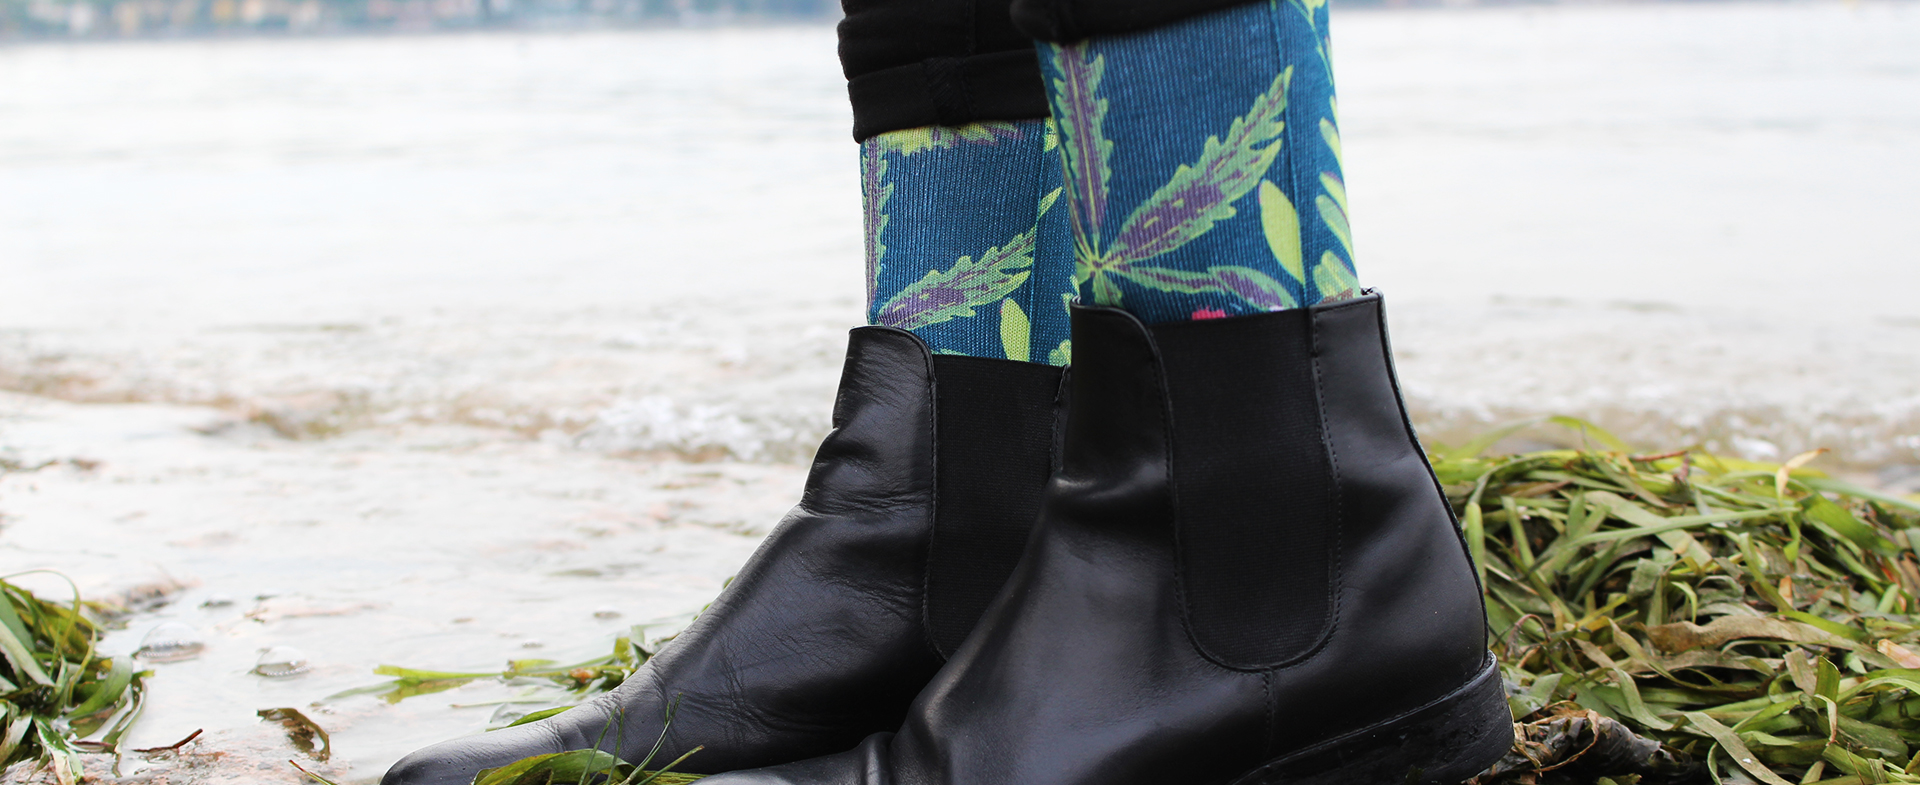 LUF SOX Classics Tropic - Our Story behind the printed Sox